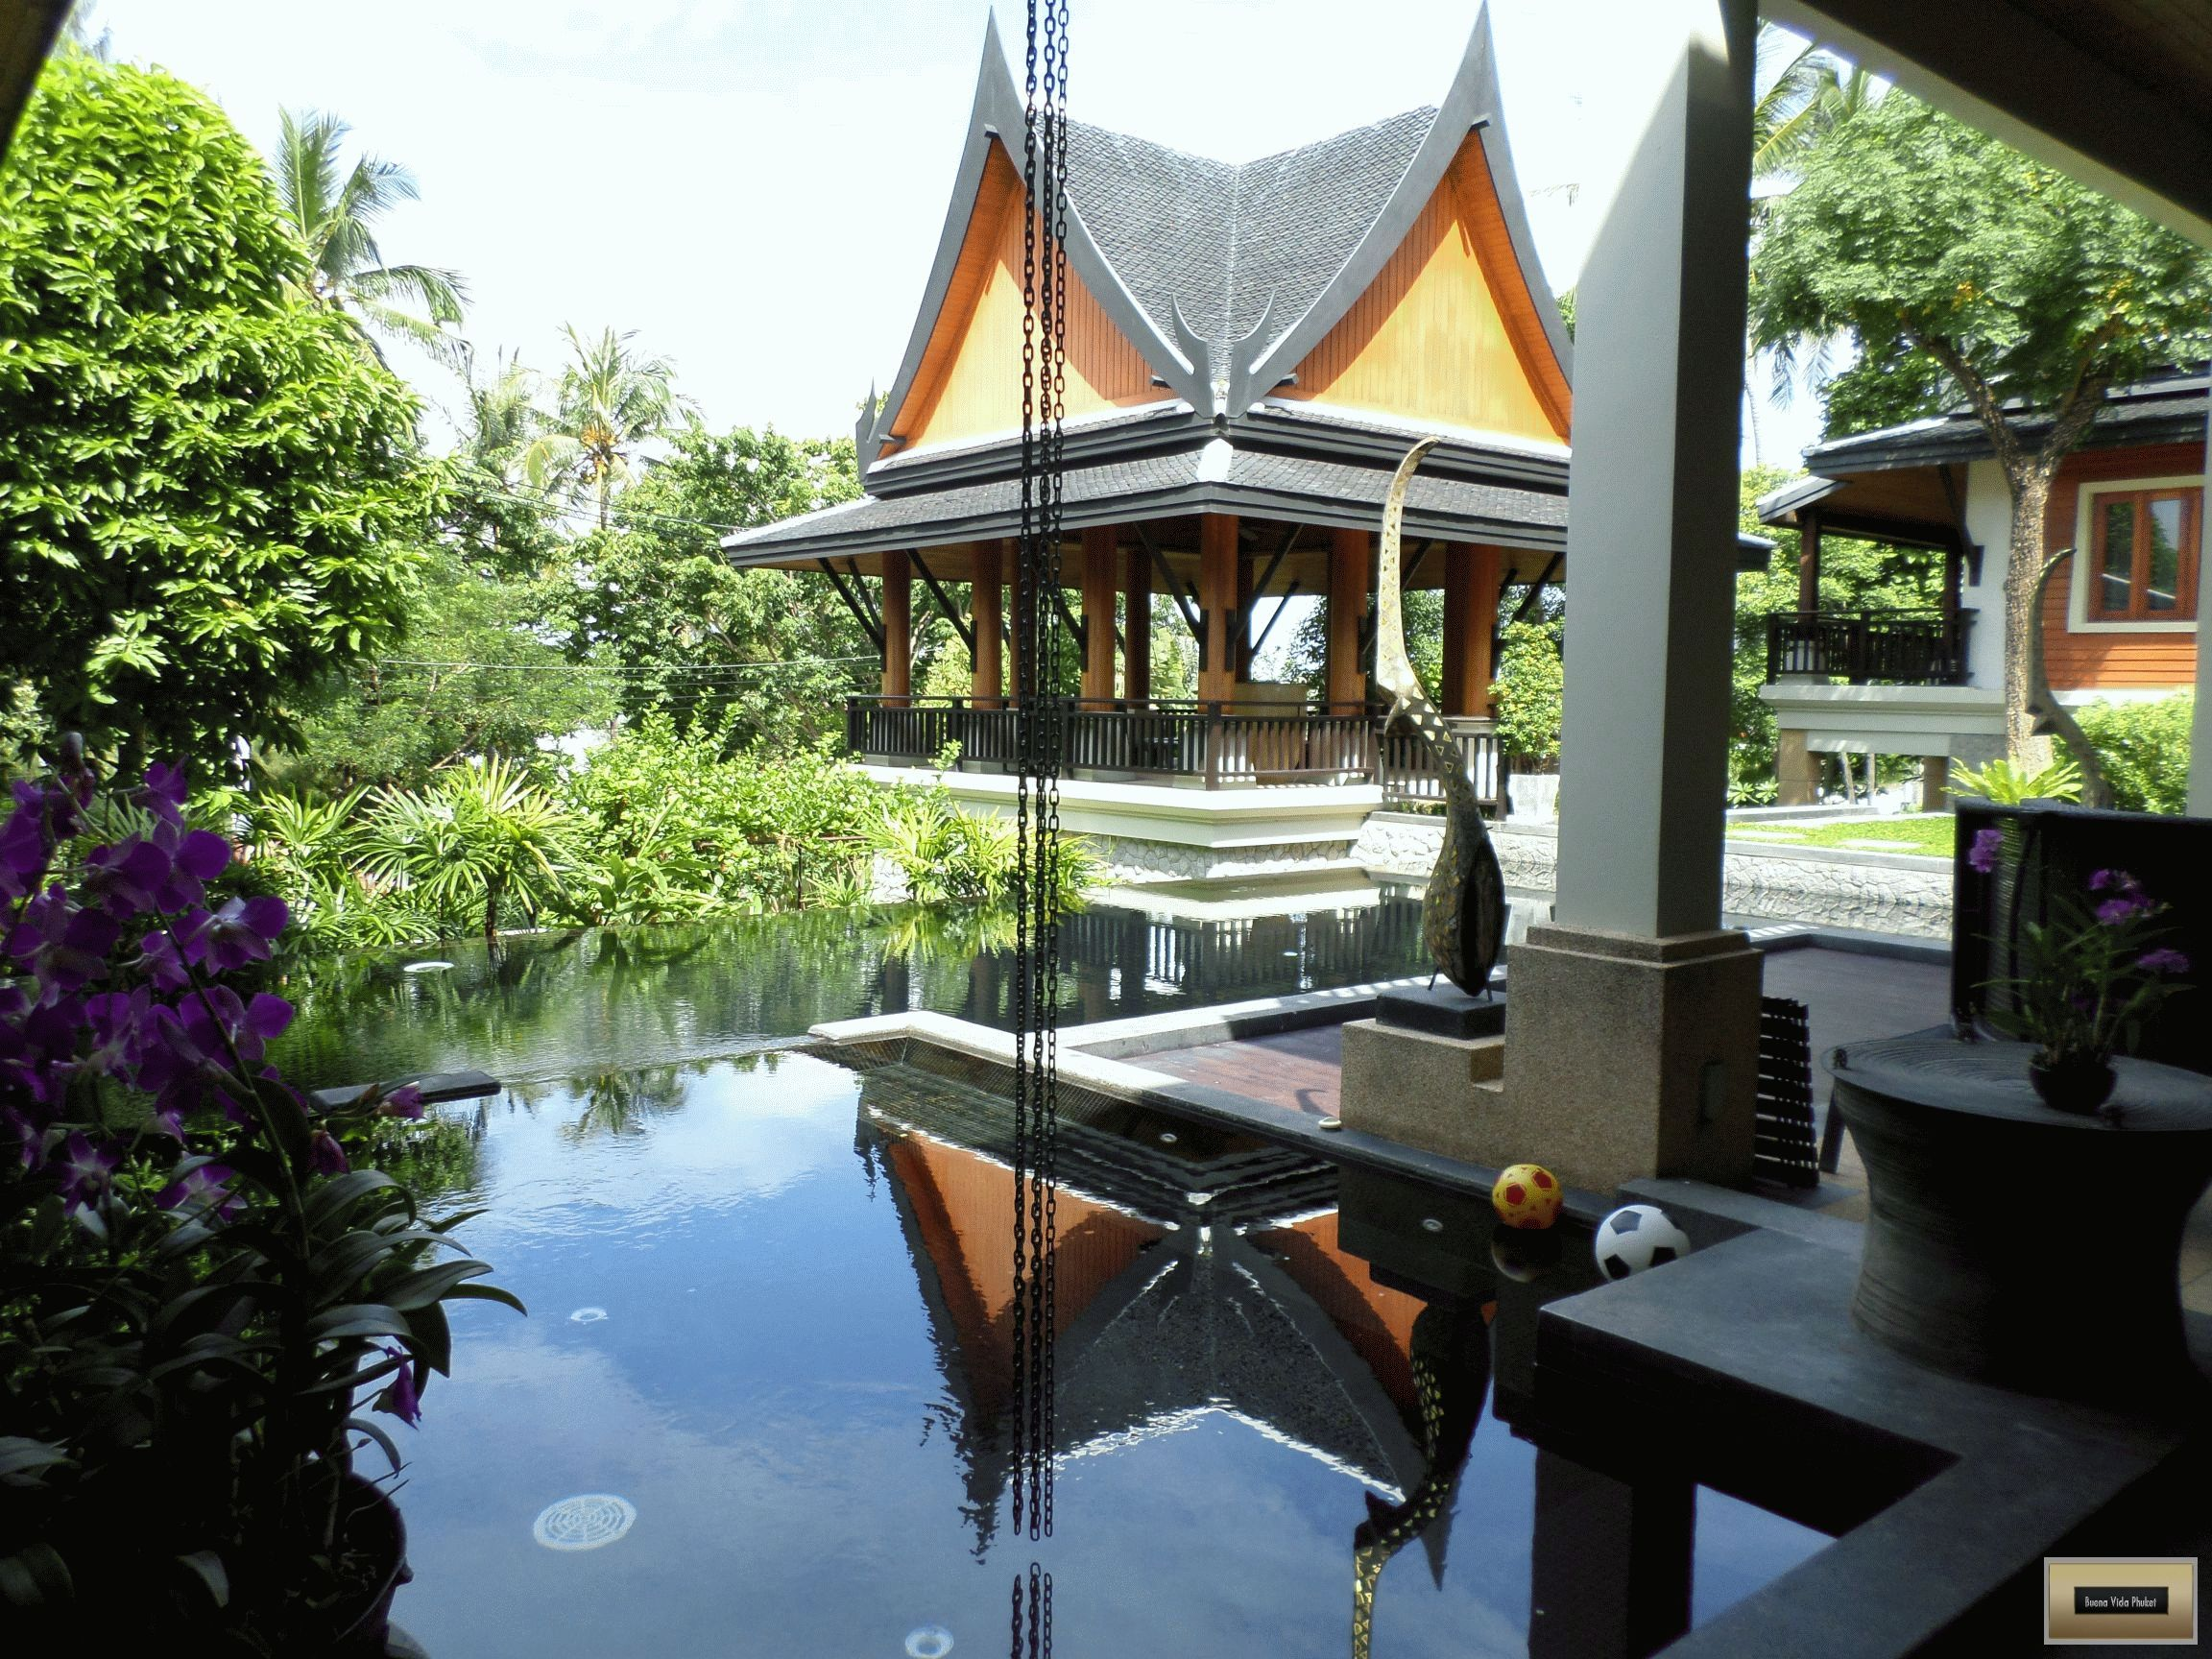 5 + 1 bedroom luxury Asian villa in Rawai